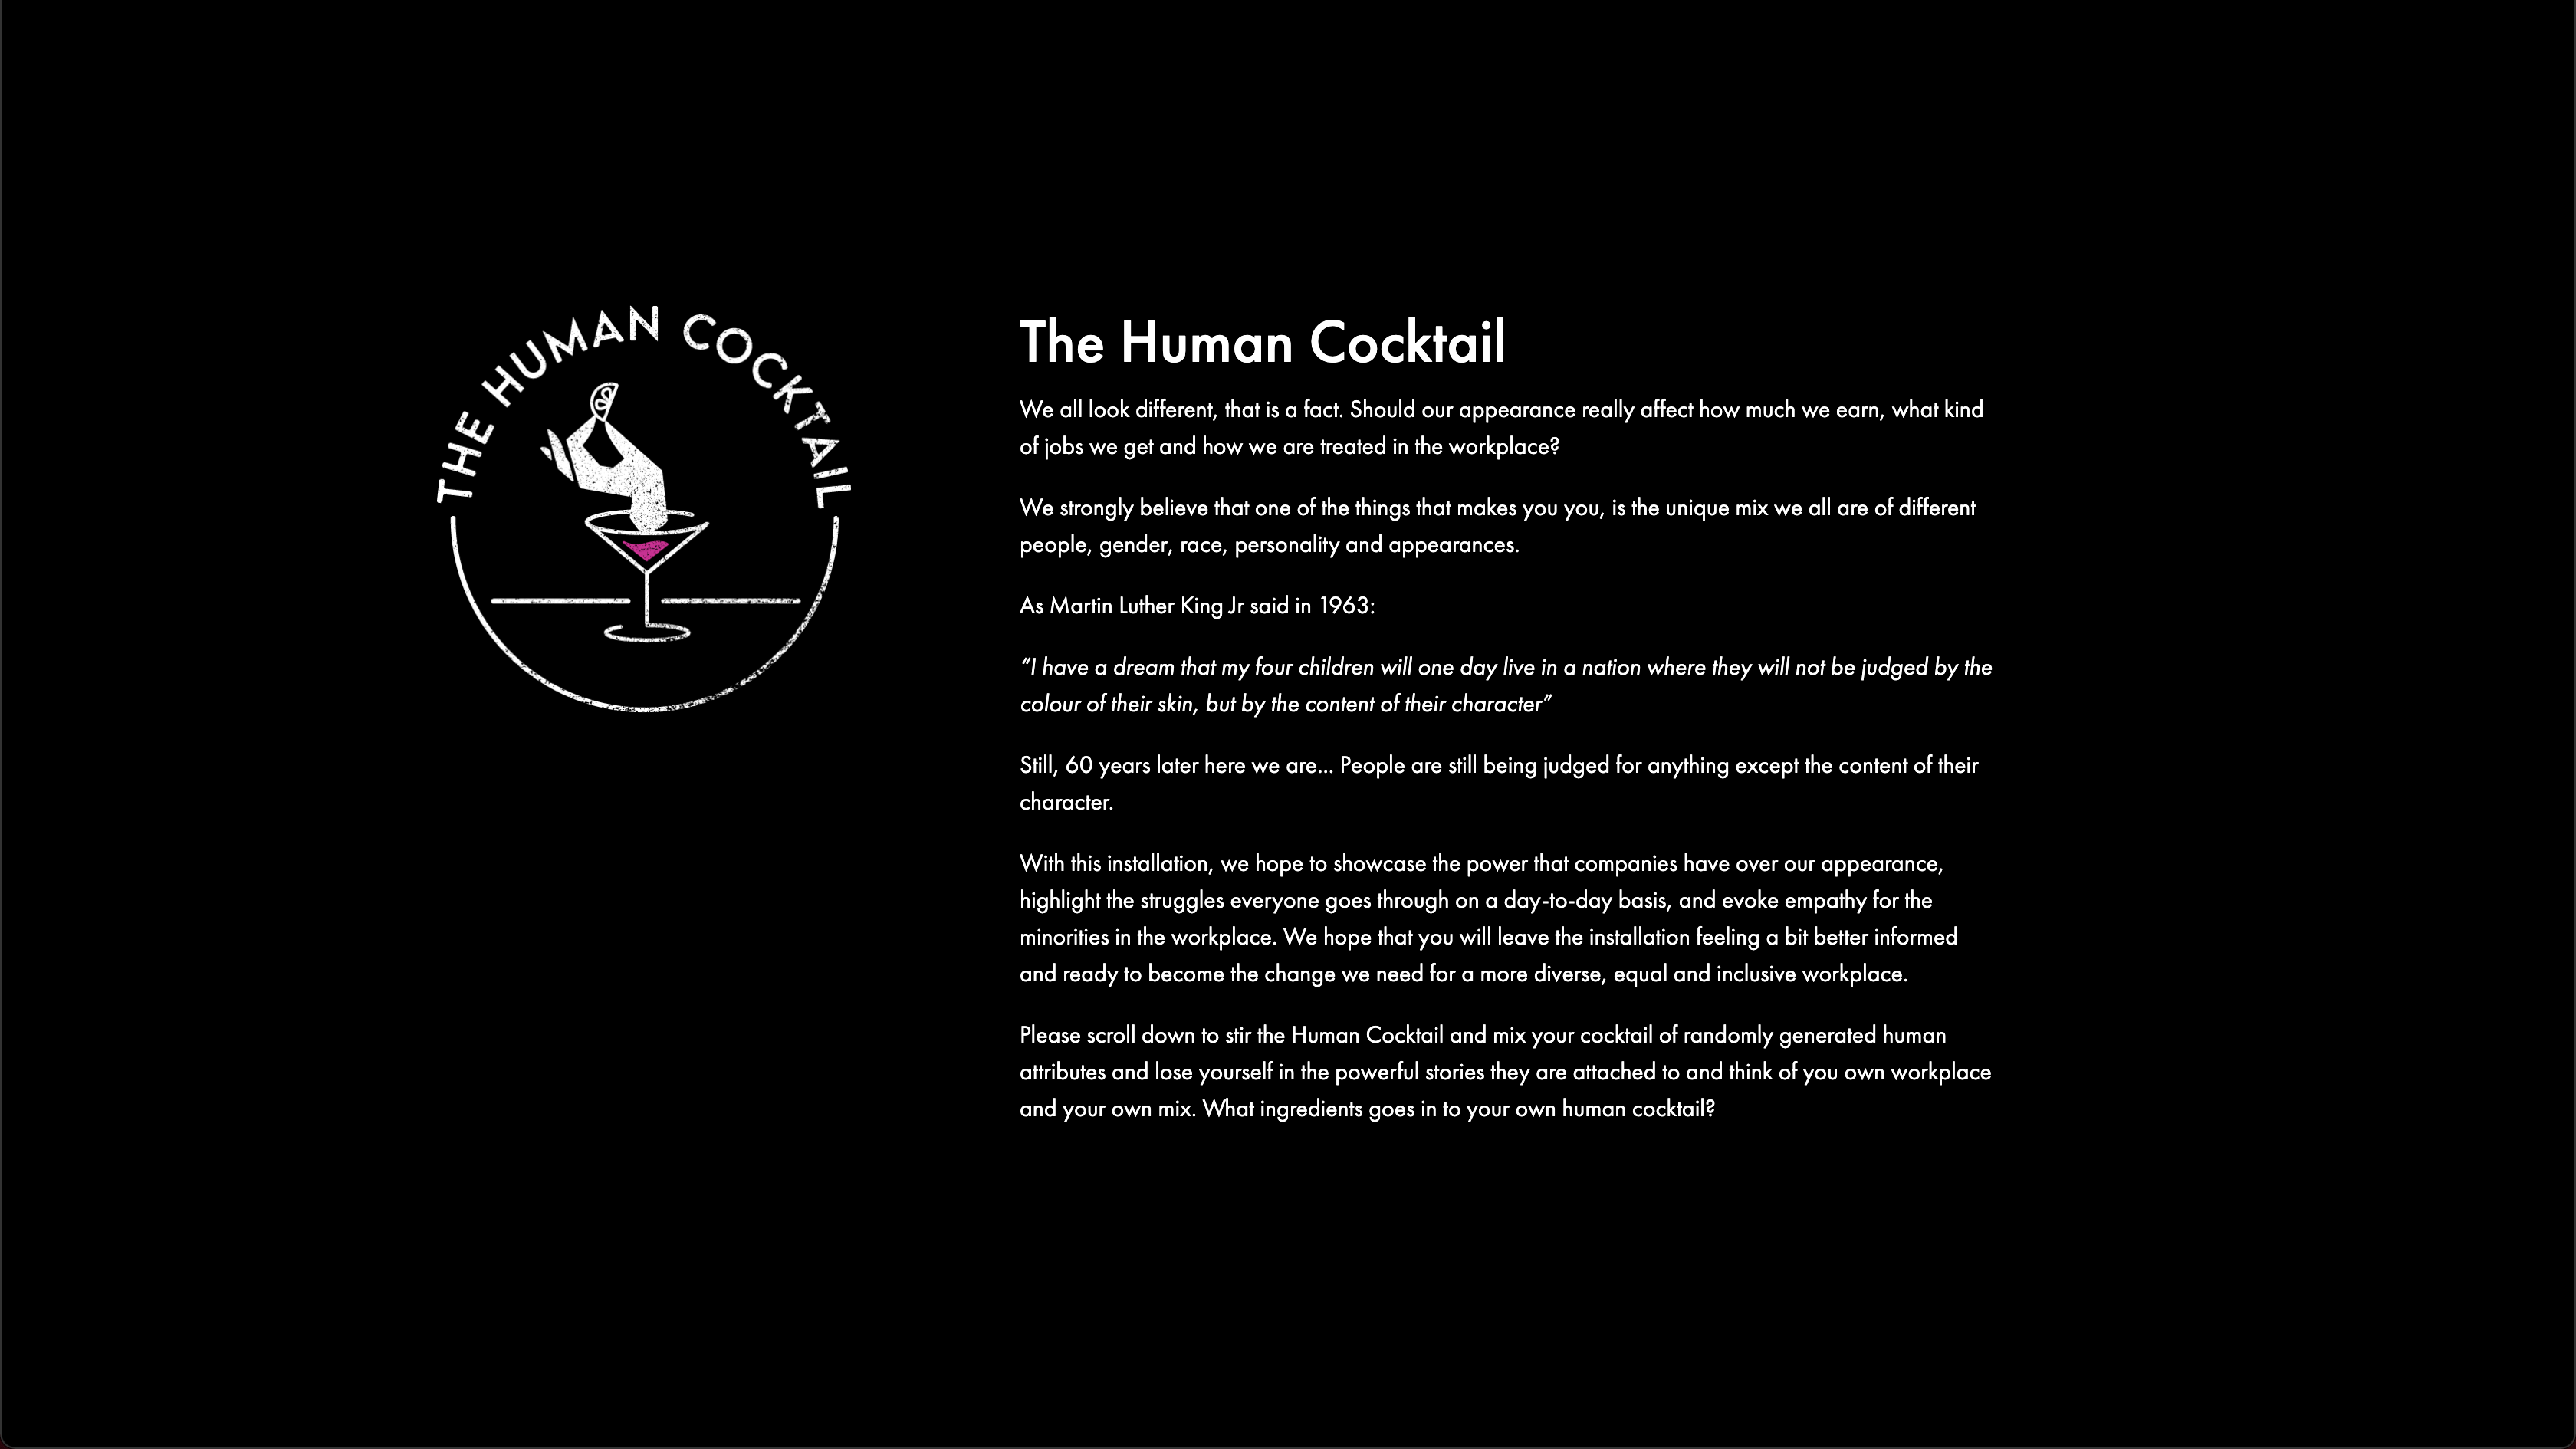 The Human Cocktail